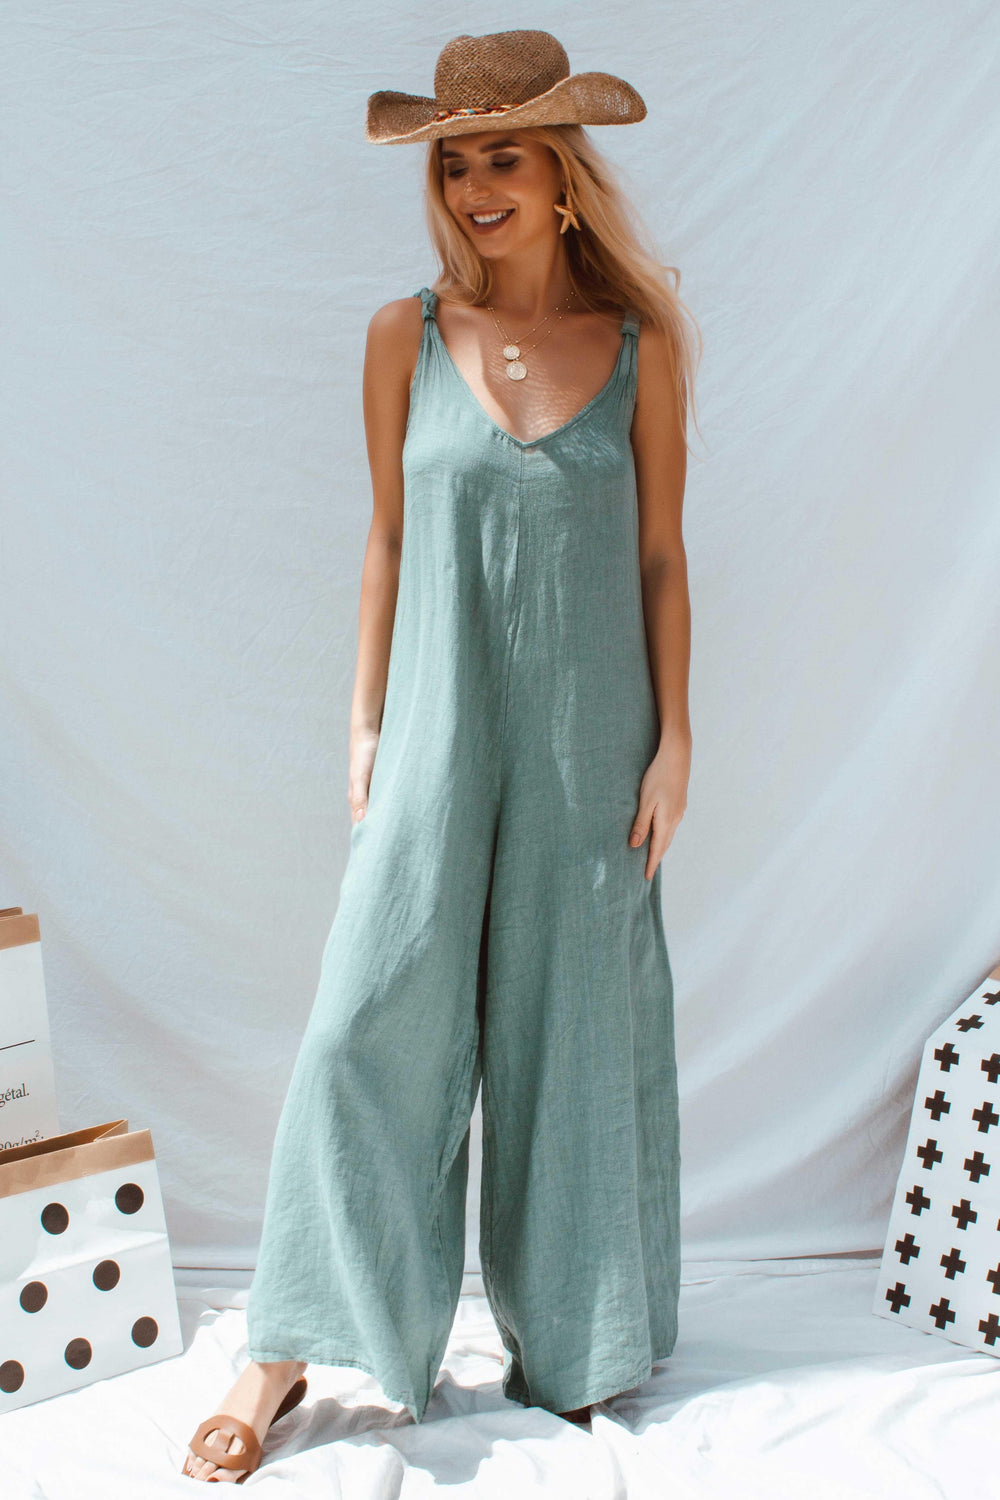 APOLLO JUMPSUIT IN GREEN - Chic Le Frique